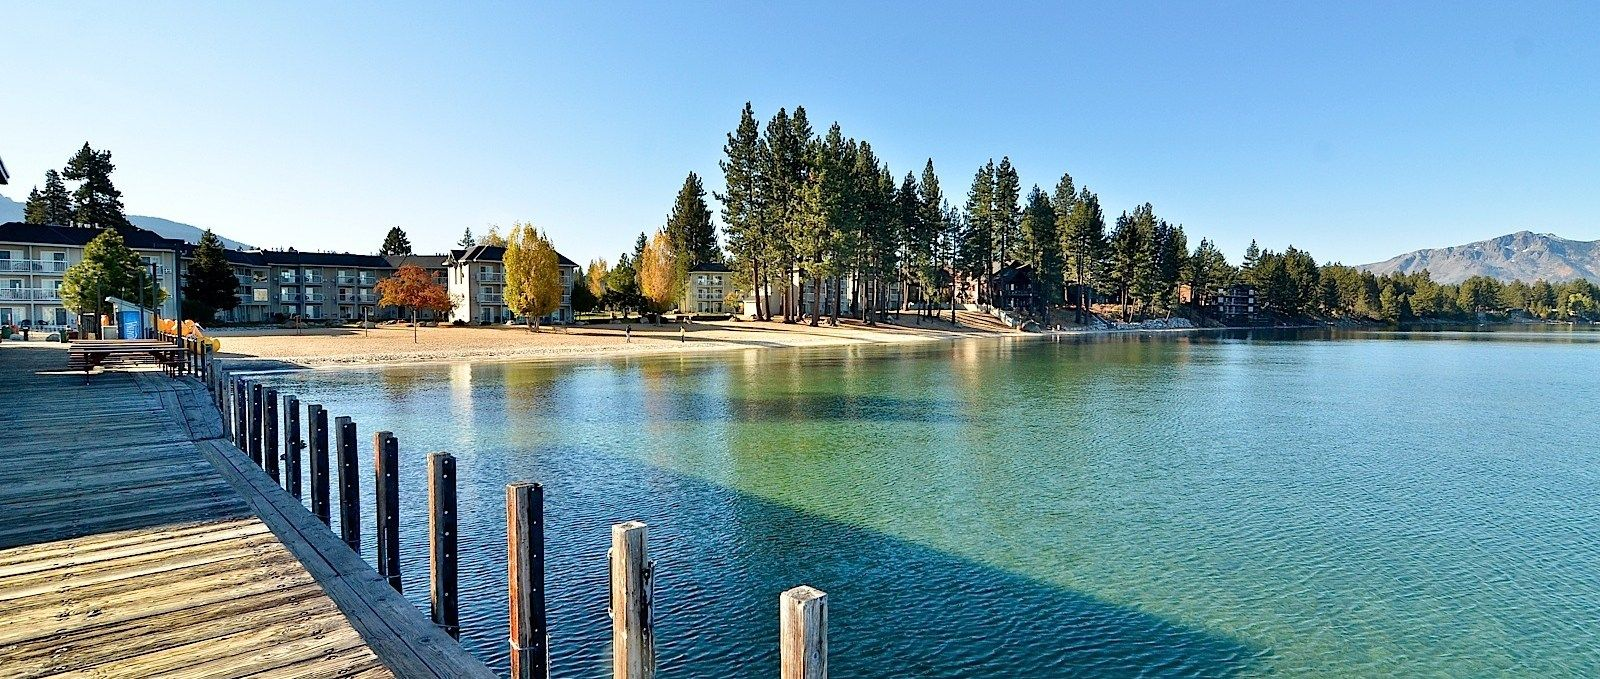 beautiful wedding places in northern california%0A The Beach Retreat  u     Lodge at Lake Tahoe Blvd Toiyabe National Forest  El  Dorado National Forest  South Lake Tahoe  CA